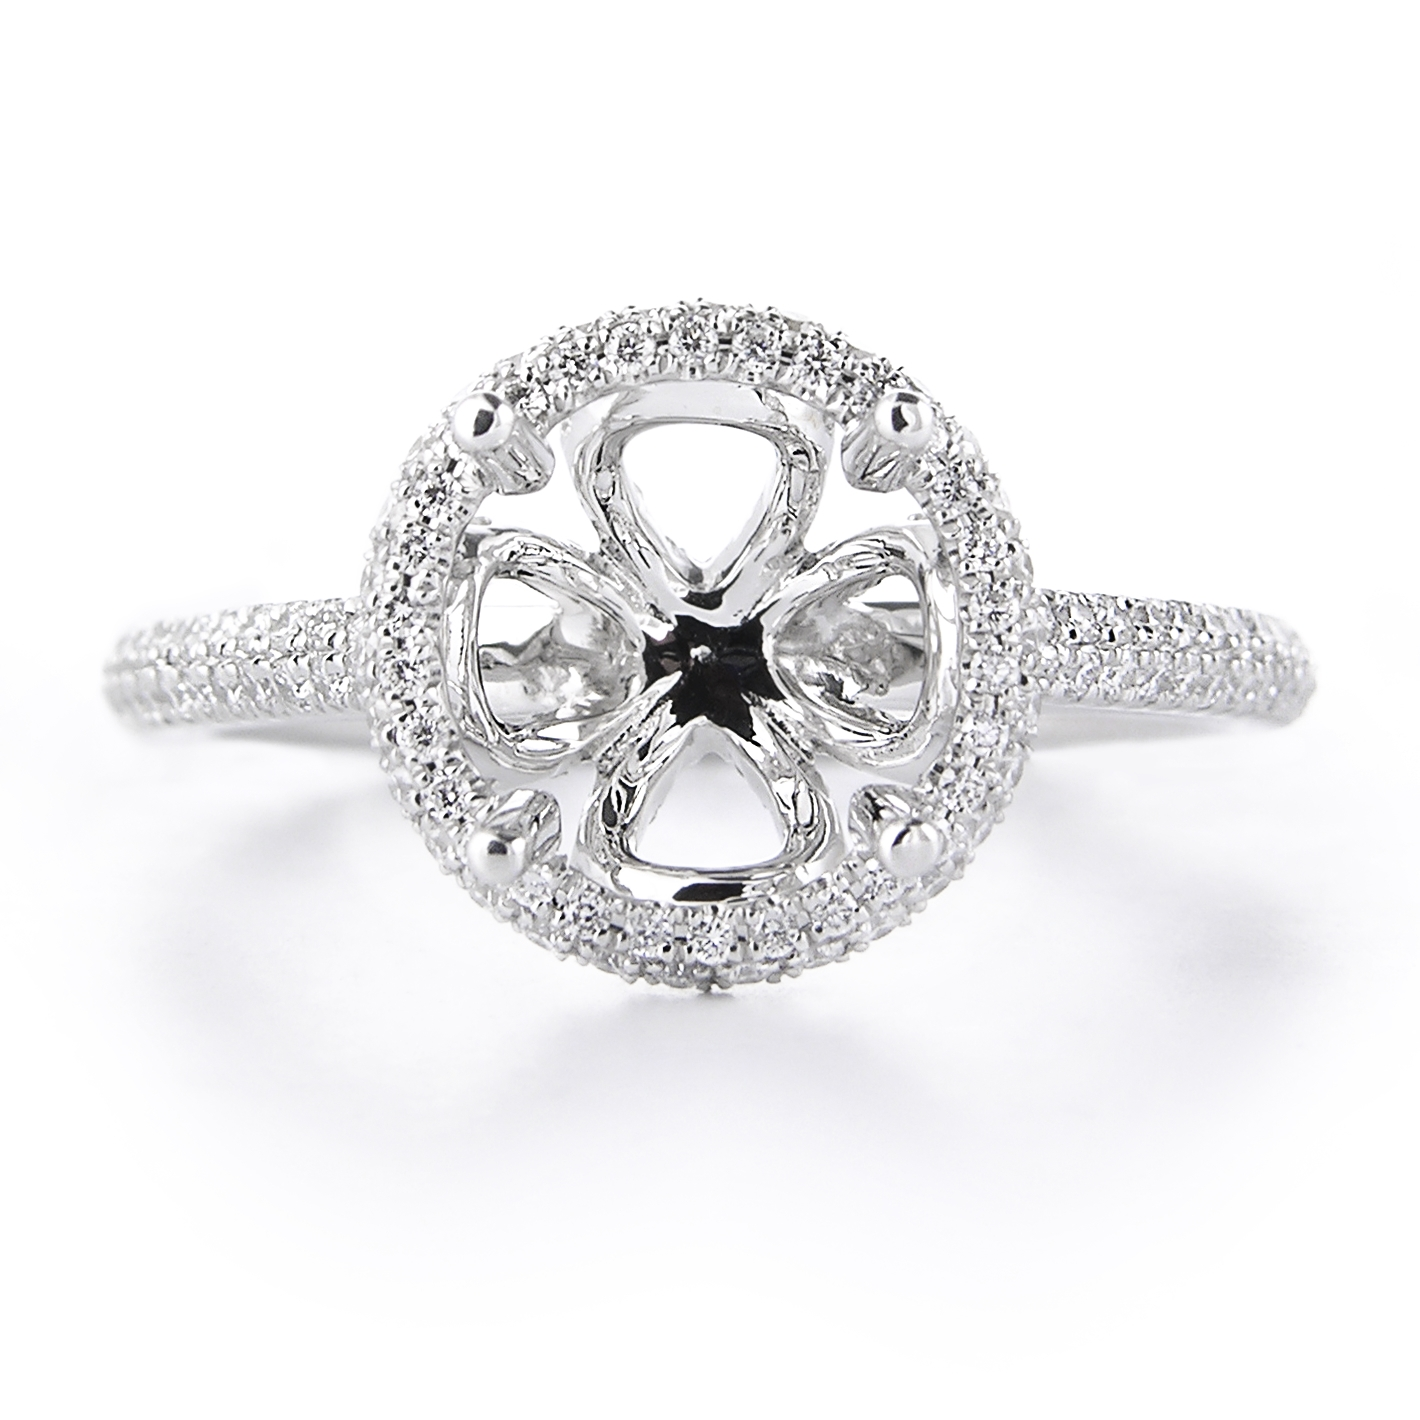 61ct diamond platinum halo engagement ring setting. Black Bedroom Furniture Sets. Home Design Ideas